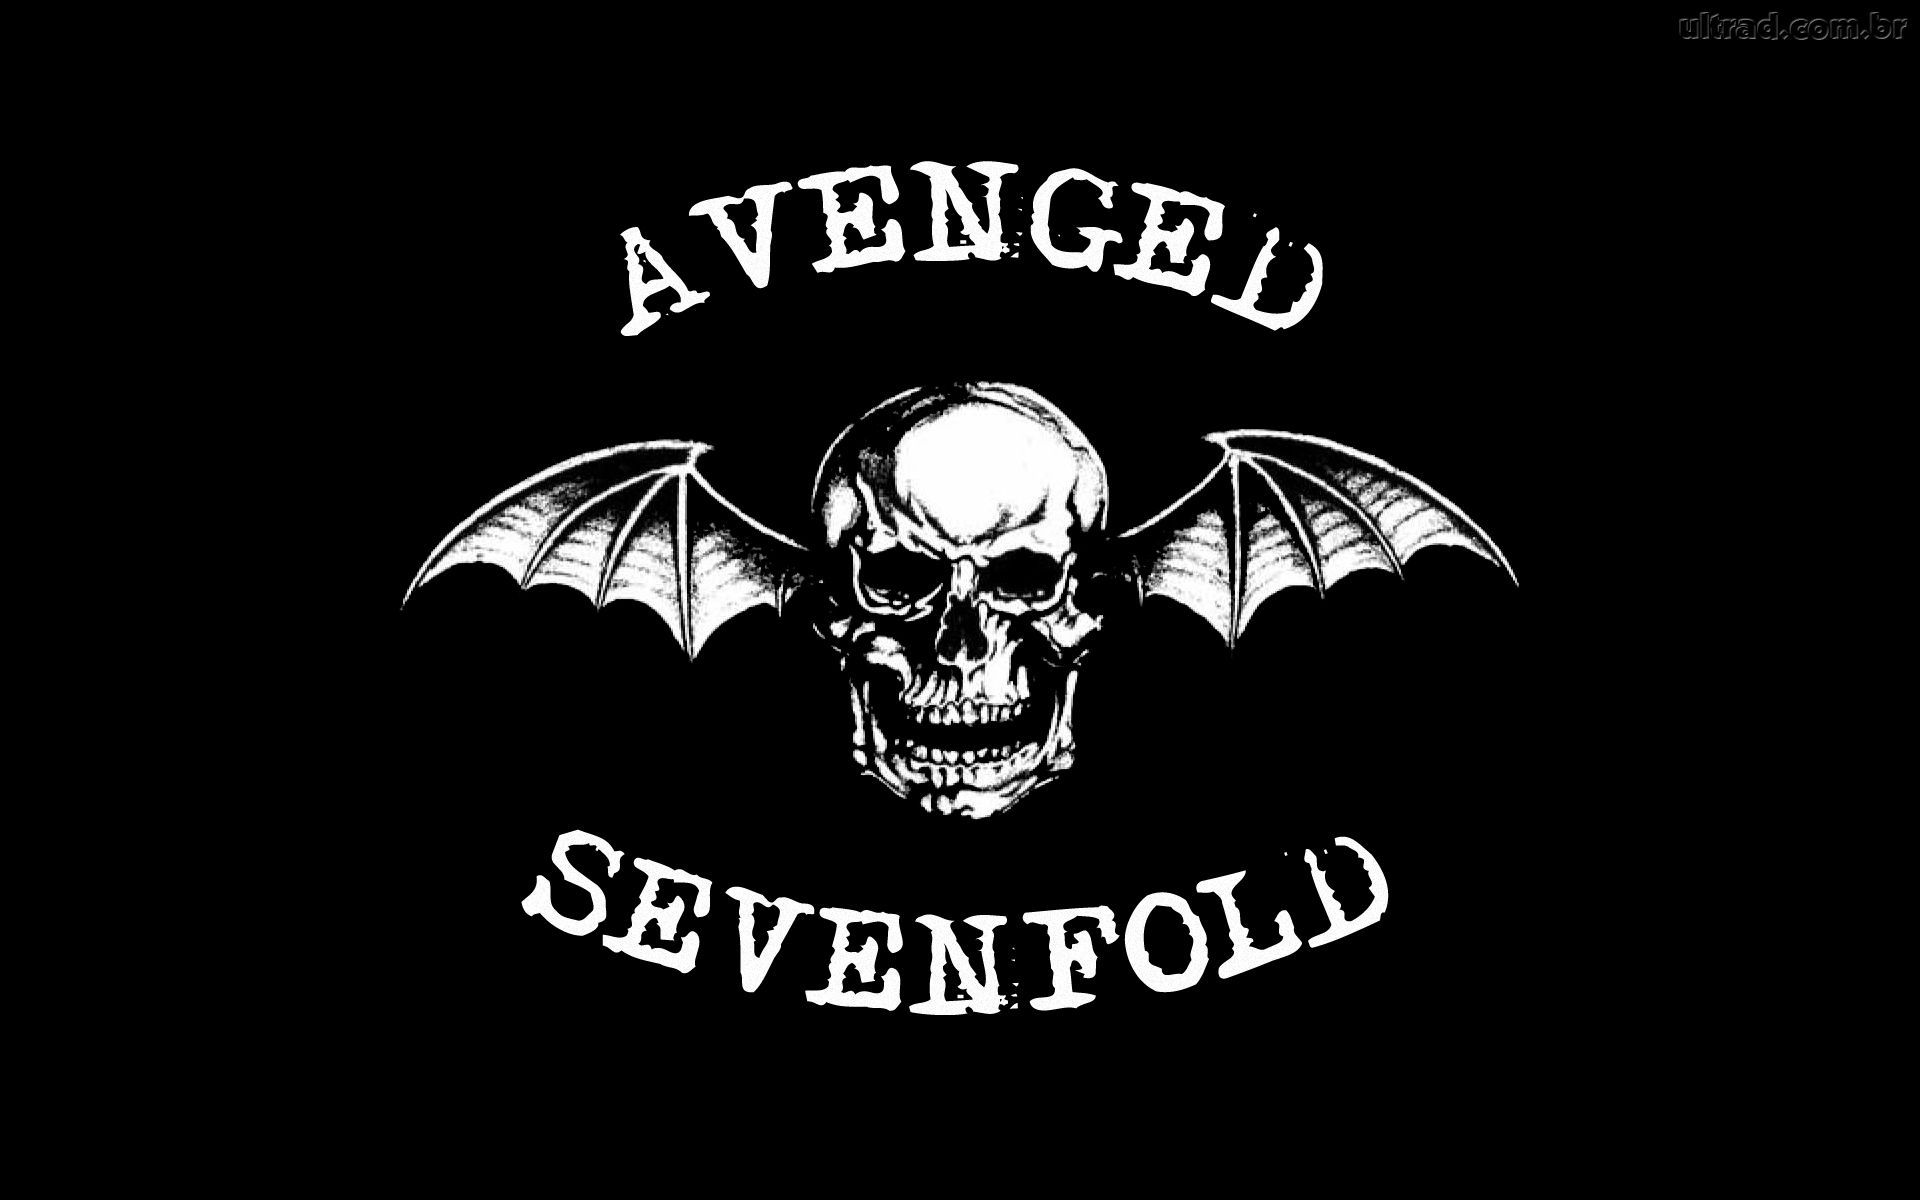 Avenged Sevenfold A7x Logo Best Hd Wallpaper Wawpaper